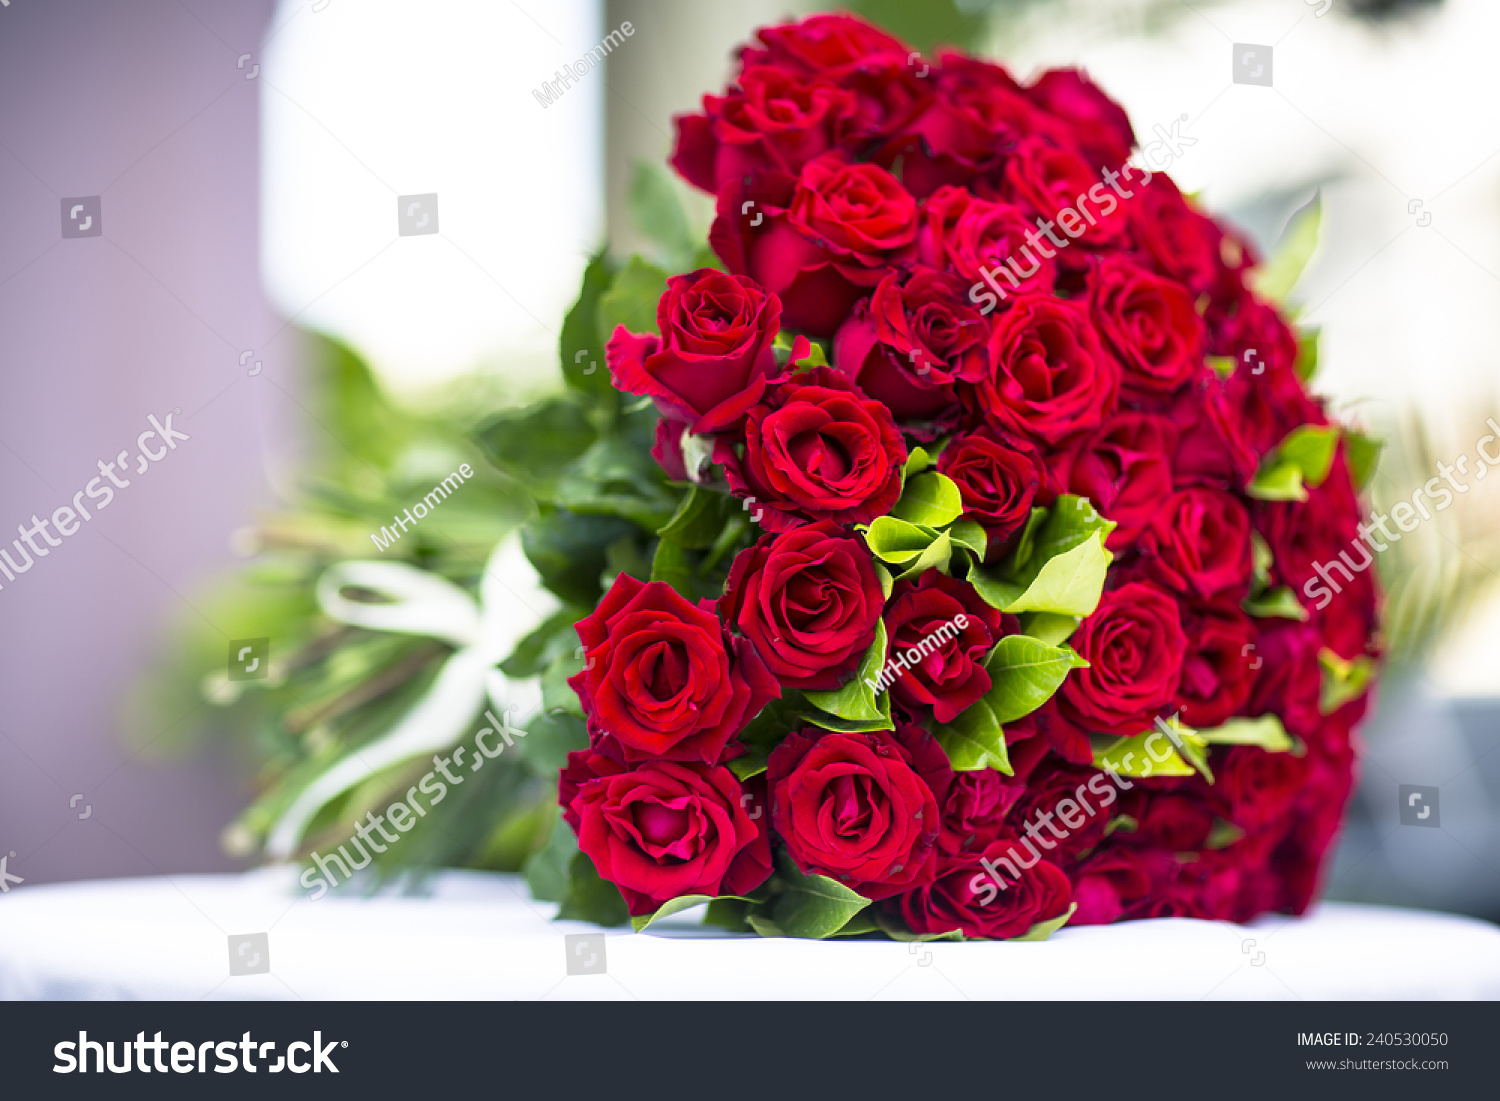 Bouquet Flowers Bouquet Hundred Red Roses Stock Photo (Royalty Free ...